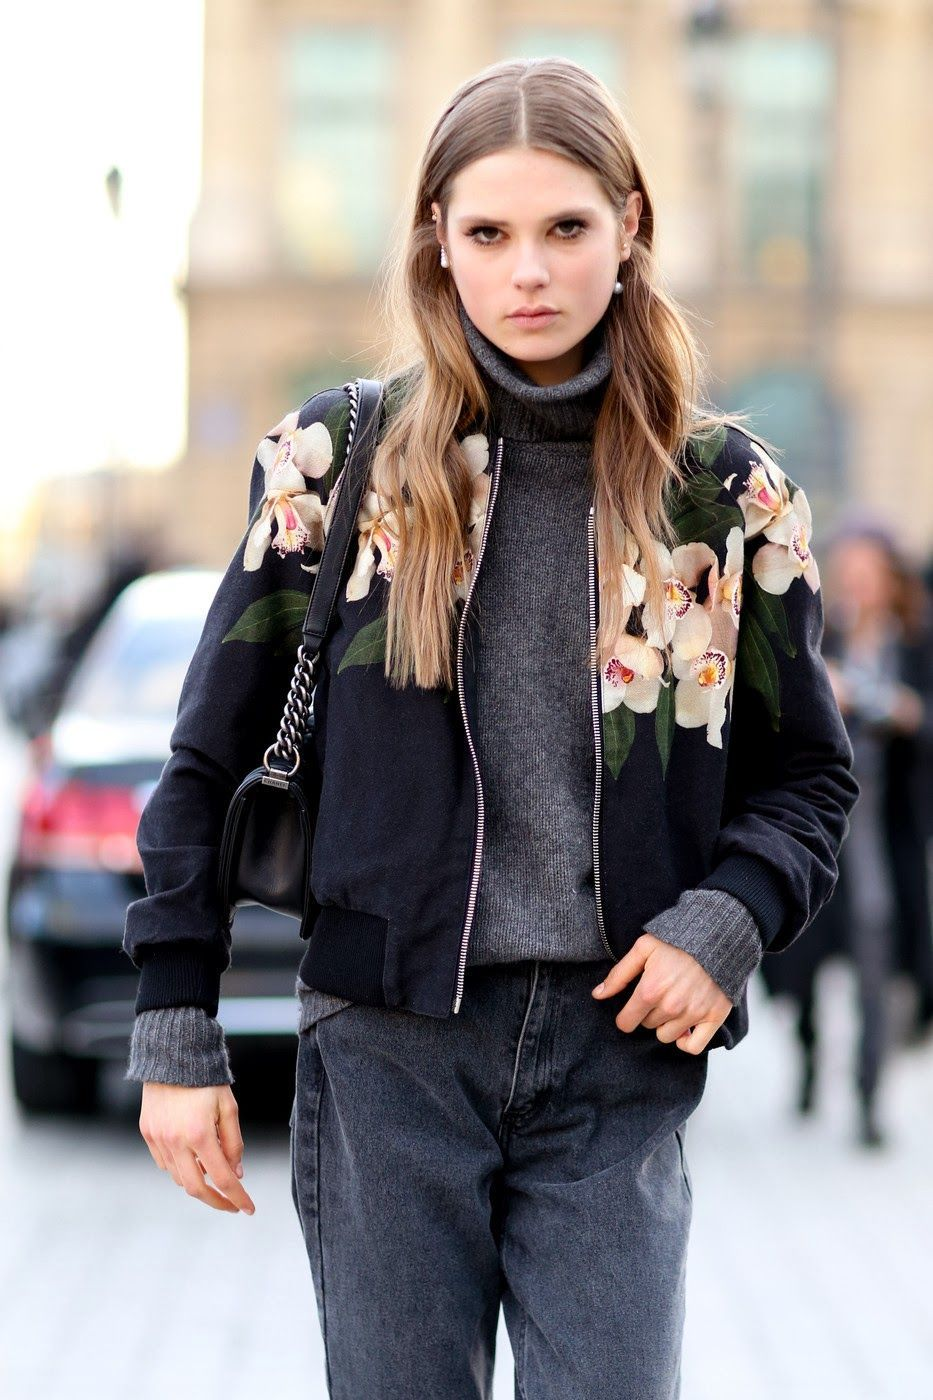 These Women S Bomber Jackets Are Celebrity Approved Bomber Jacket Women Bomber Jacket Street Style Lace Bomber Jacket [ 1400 x 933 Pixel ]